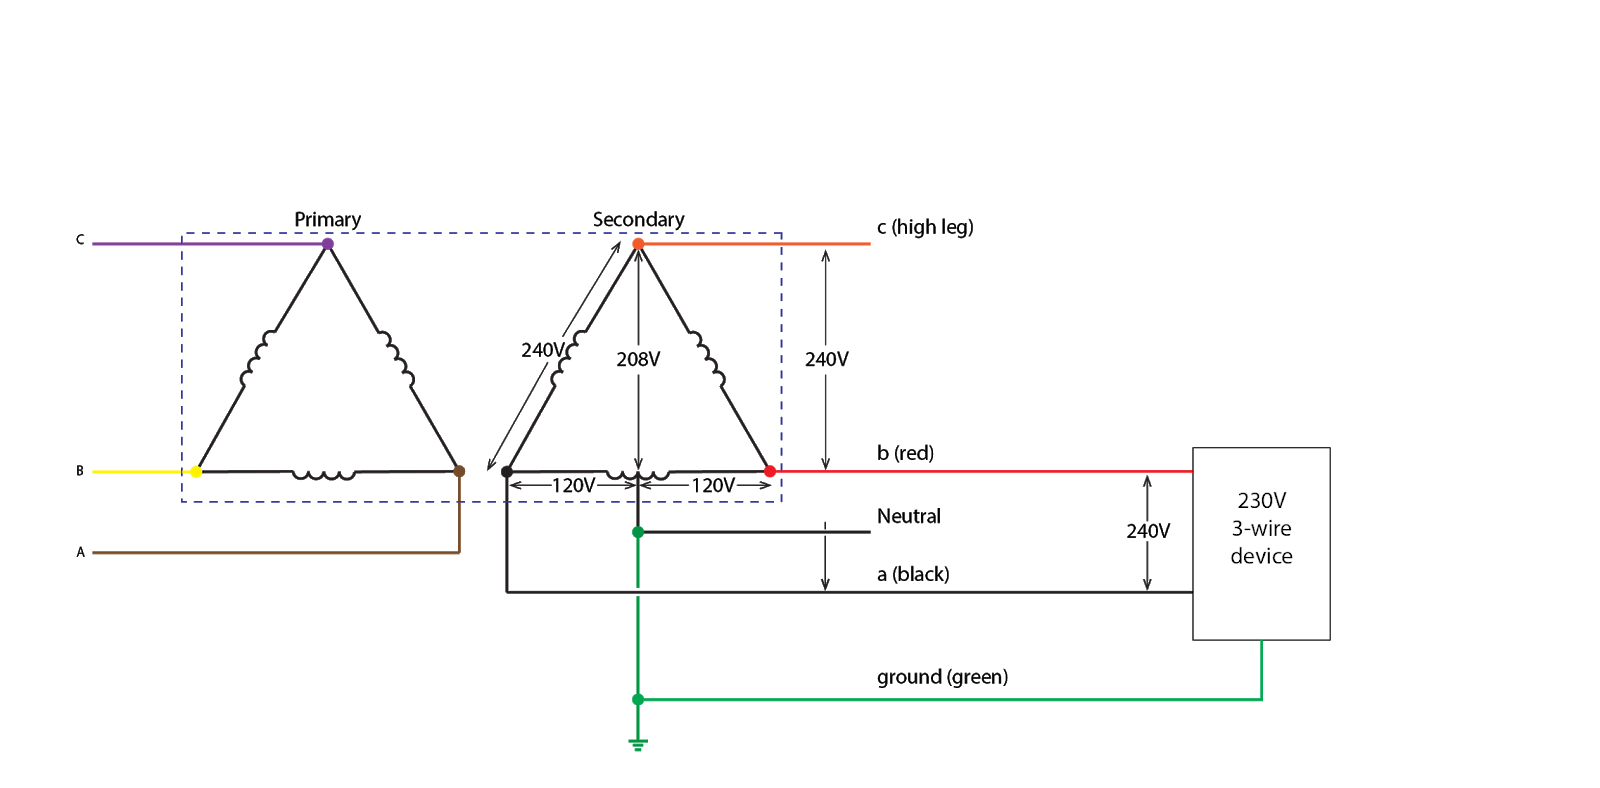 small resolution of lastly most 3 phase generators can operate in single phase zig zag mode which gives you 120v from phase to neutral and 240v phase to phase